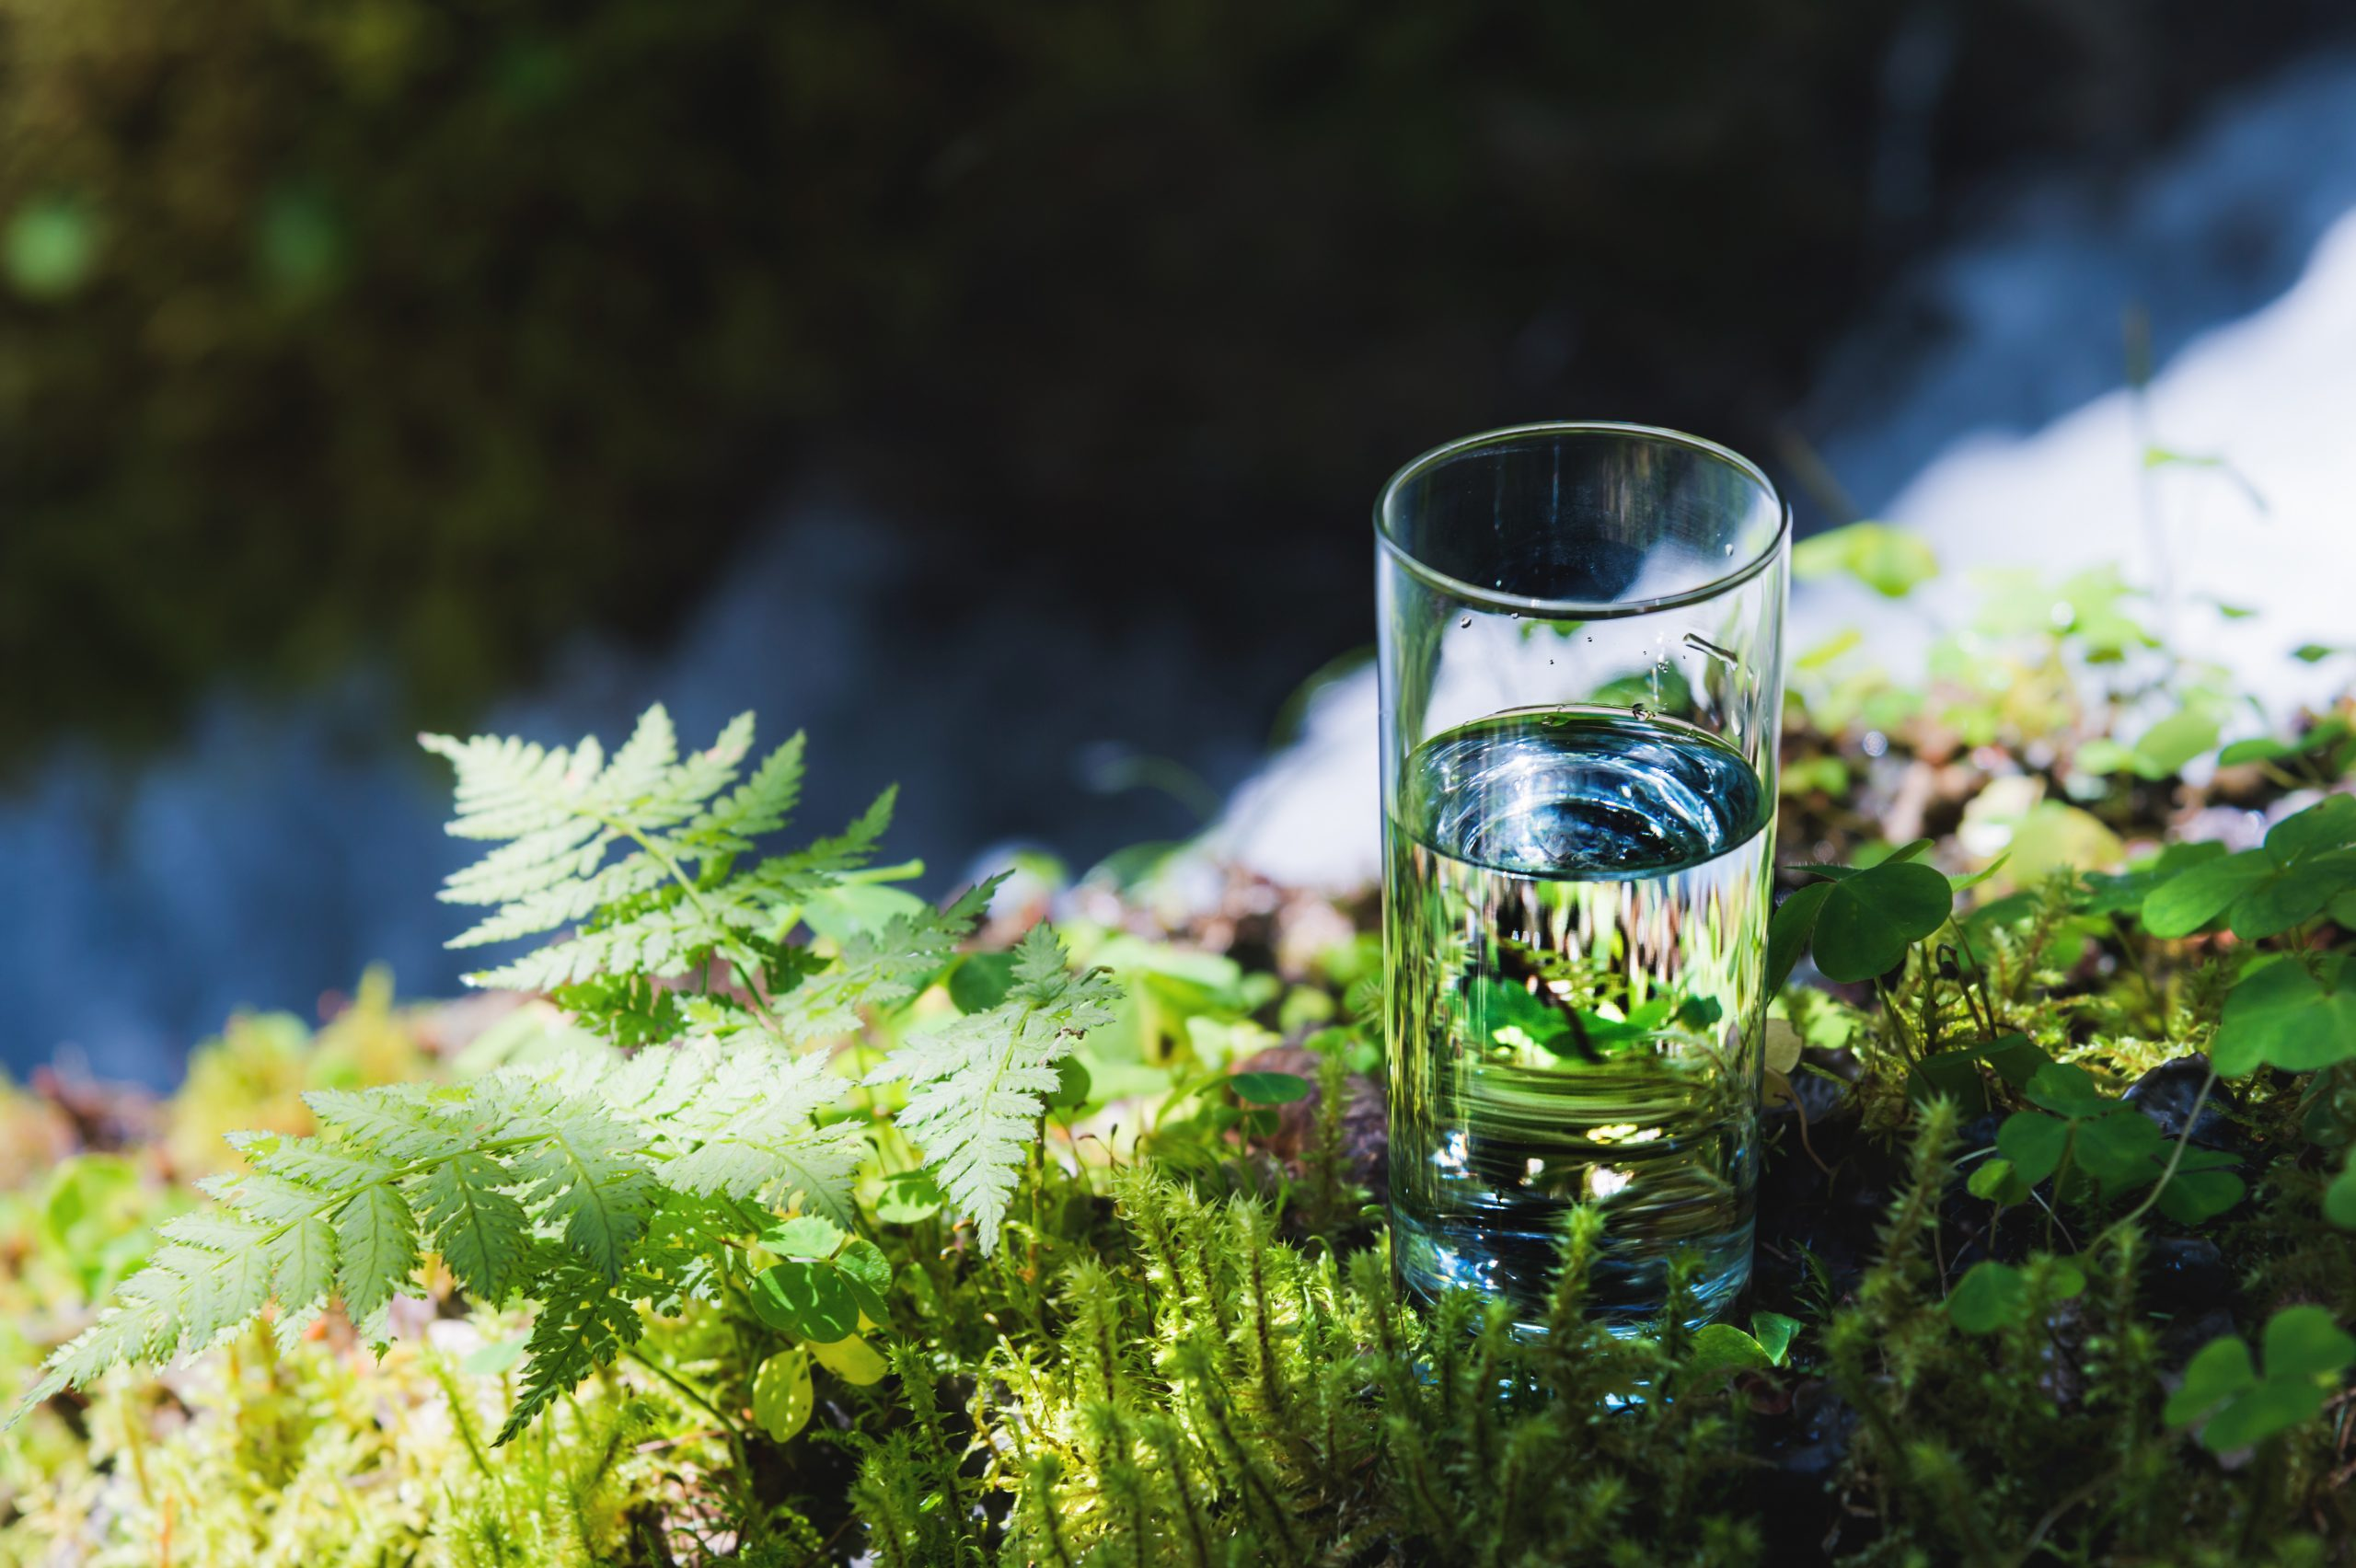 Clear water in a clear glass against a background of green moss with a mountain river in the background. Healthy food and environmentally friendly natural water.